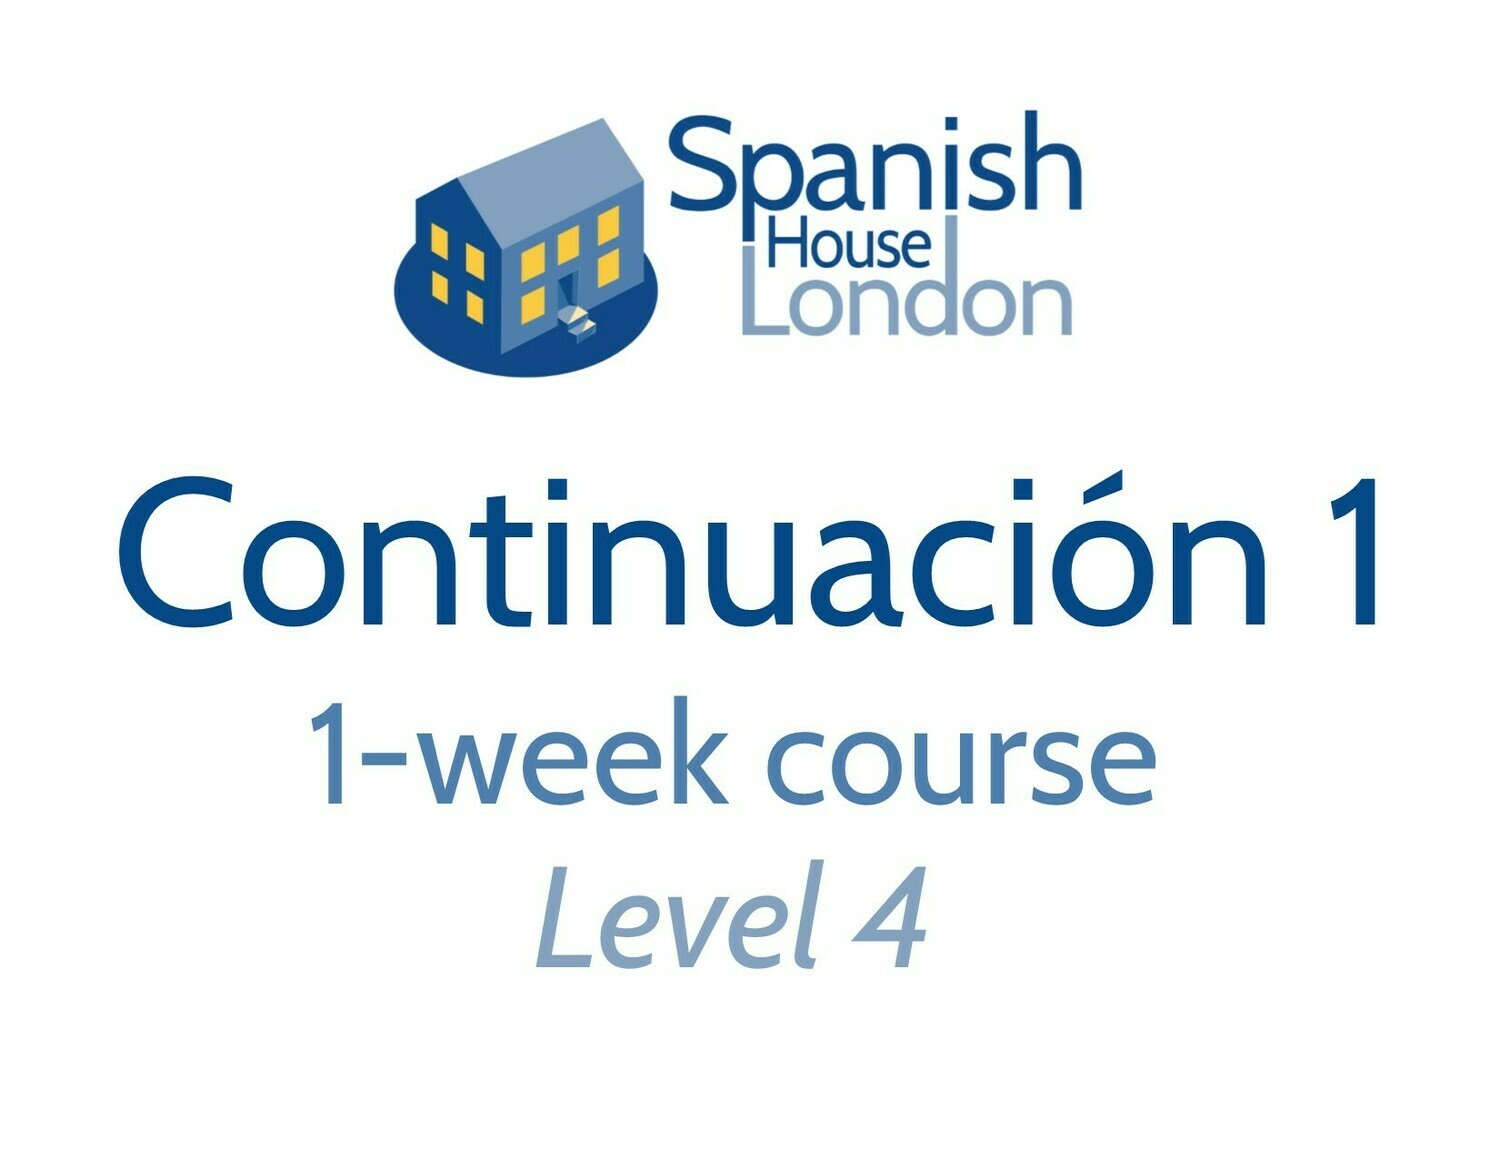 Continuación 1 One-Week Intensive Course starting on 28th October at 10am in Clapham North